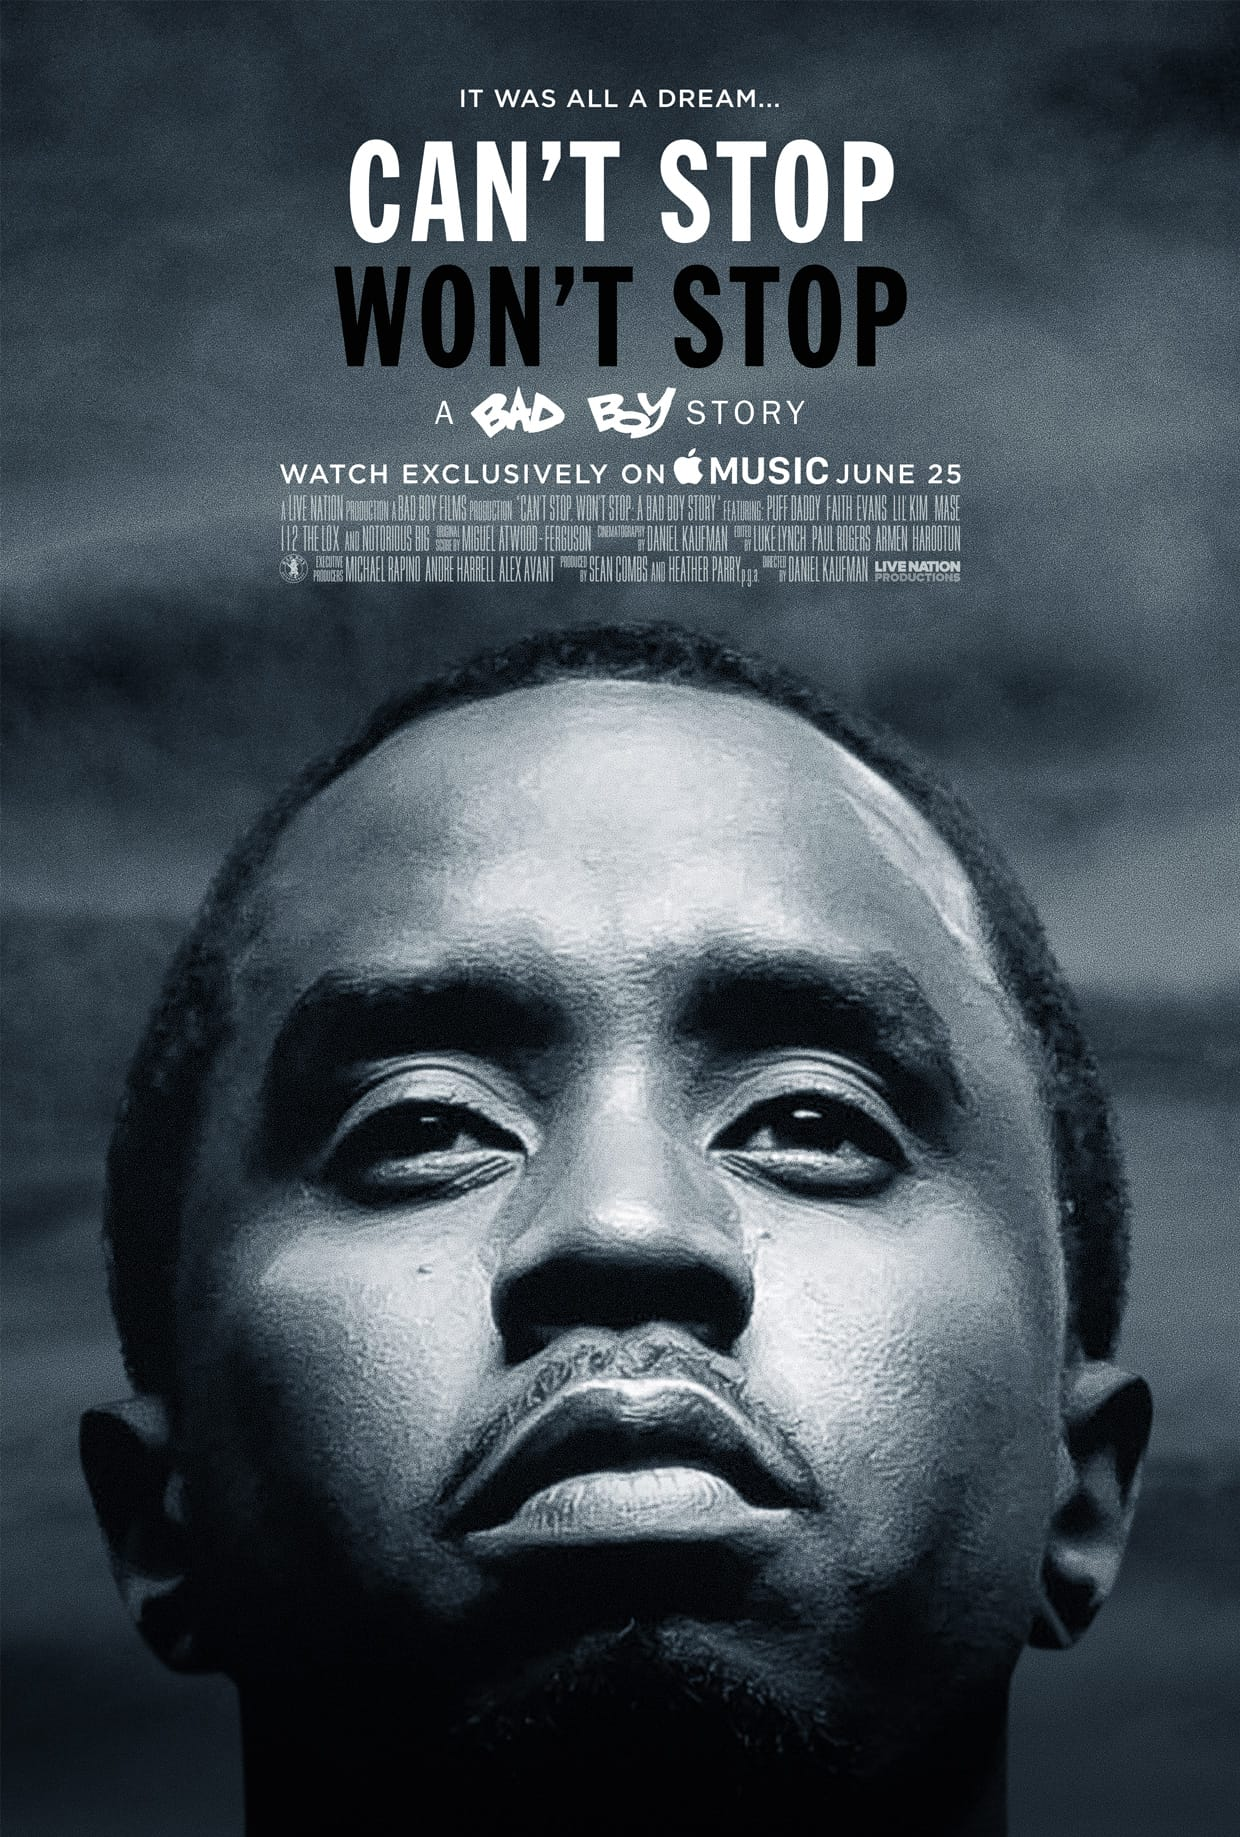 Diddy's movie is coming to Apple Music.